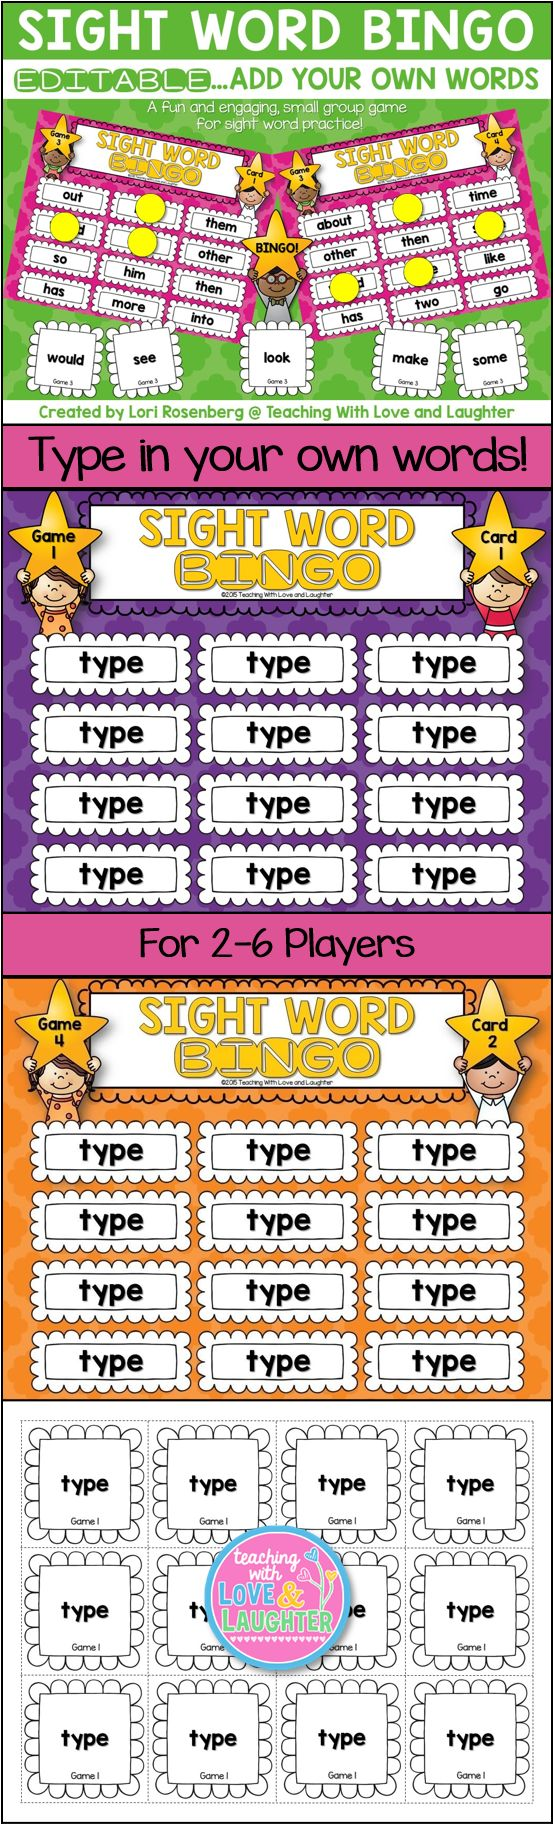 EDITABLE Sight Word Bingo